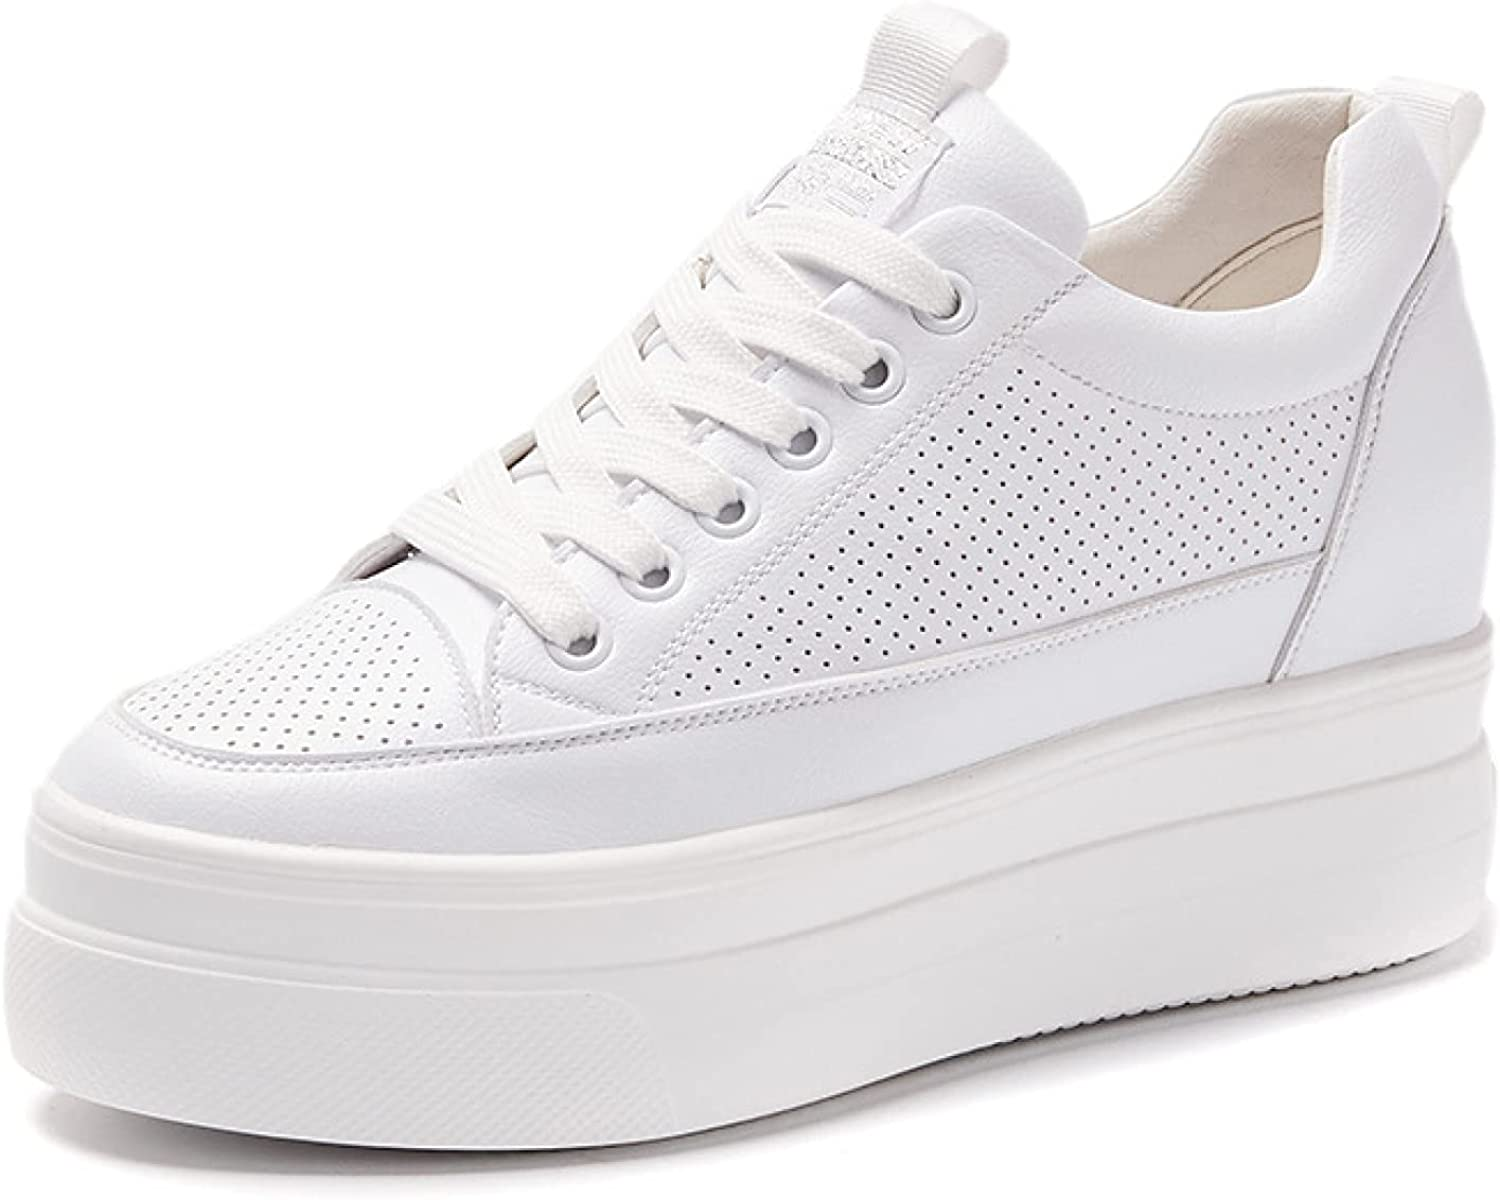 Women's Inventory cleanup selling sale Wedge free shipping Shoes with Low Top Breathable Hole Walk Sole Softy